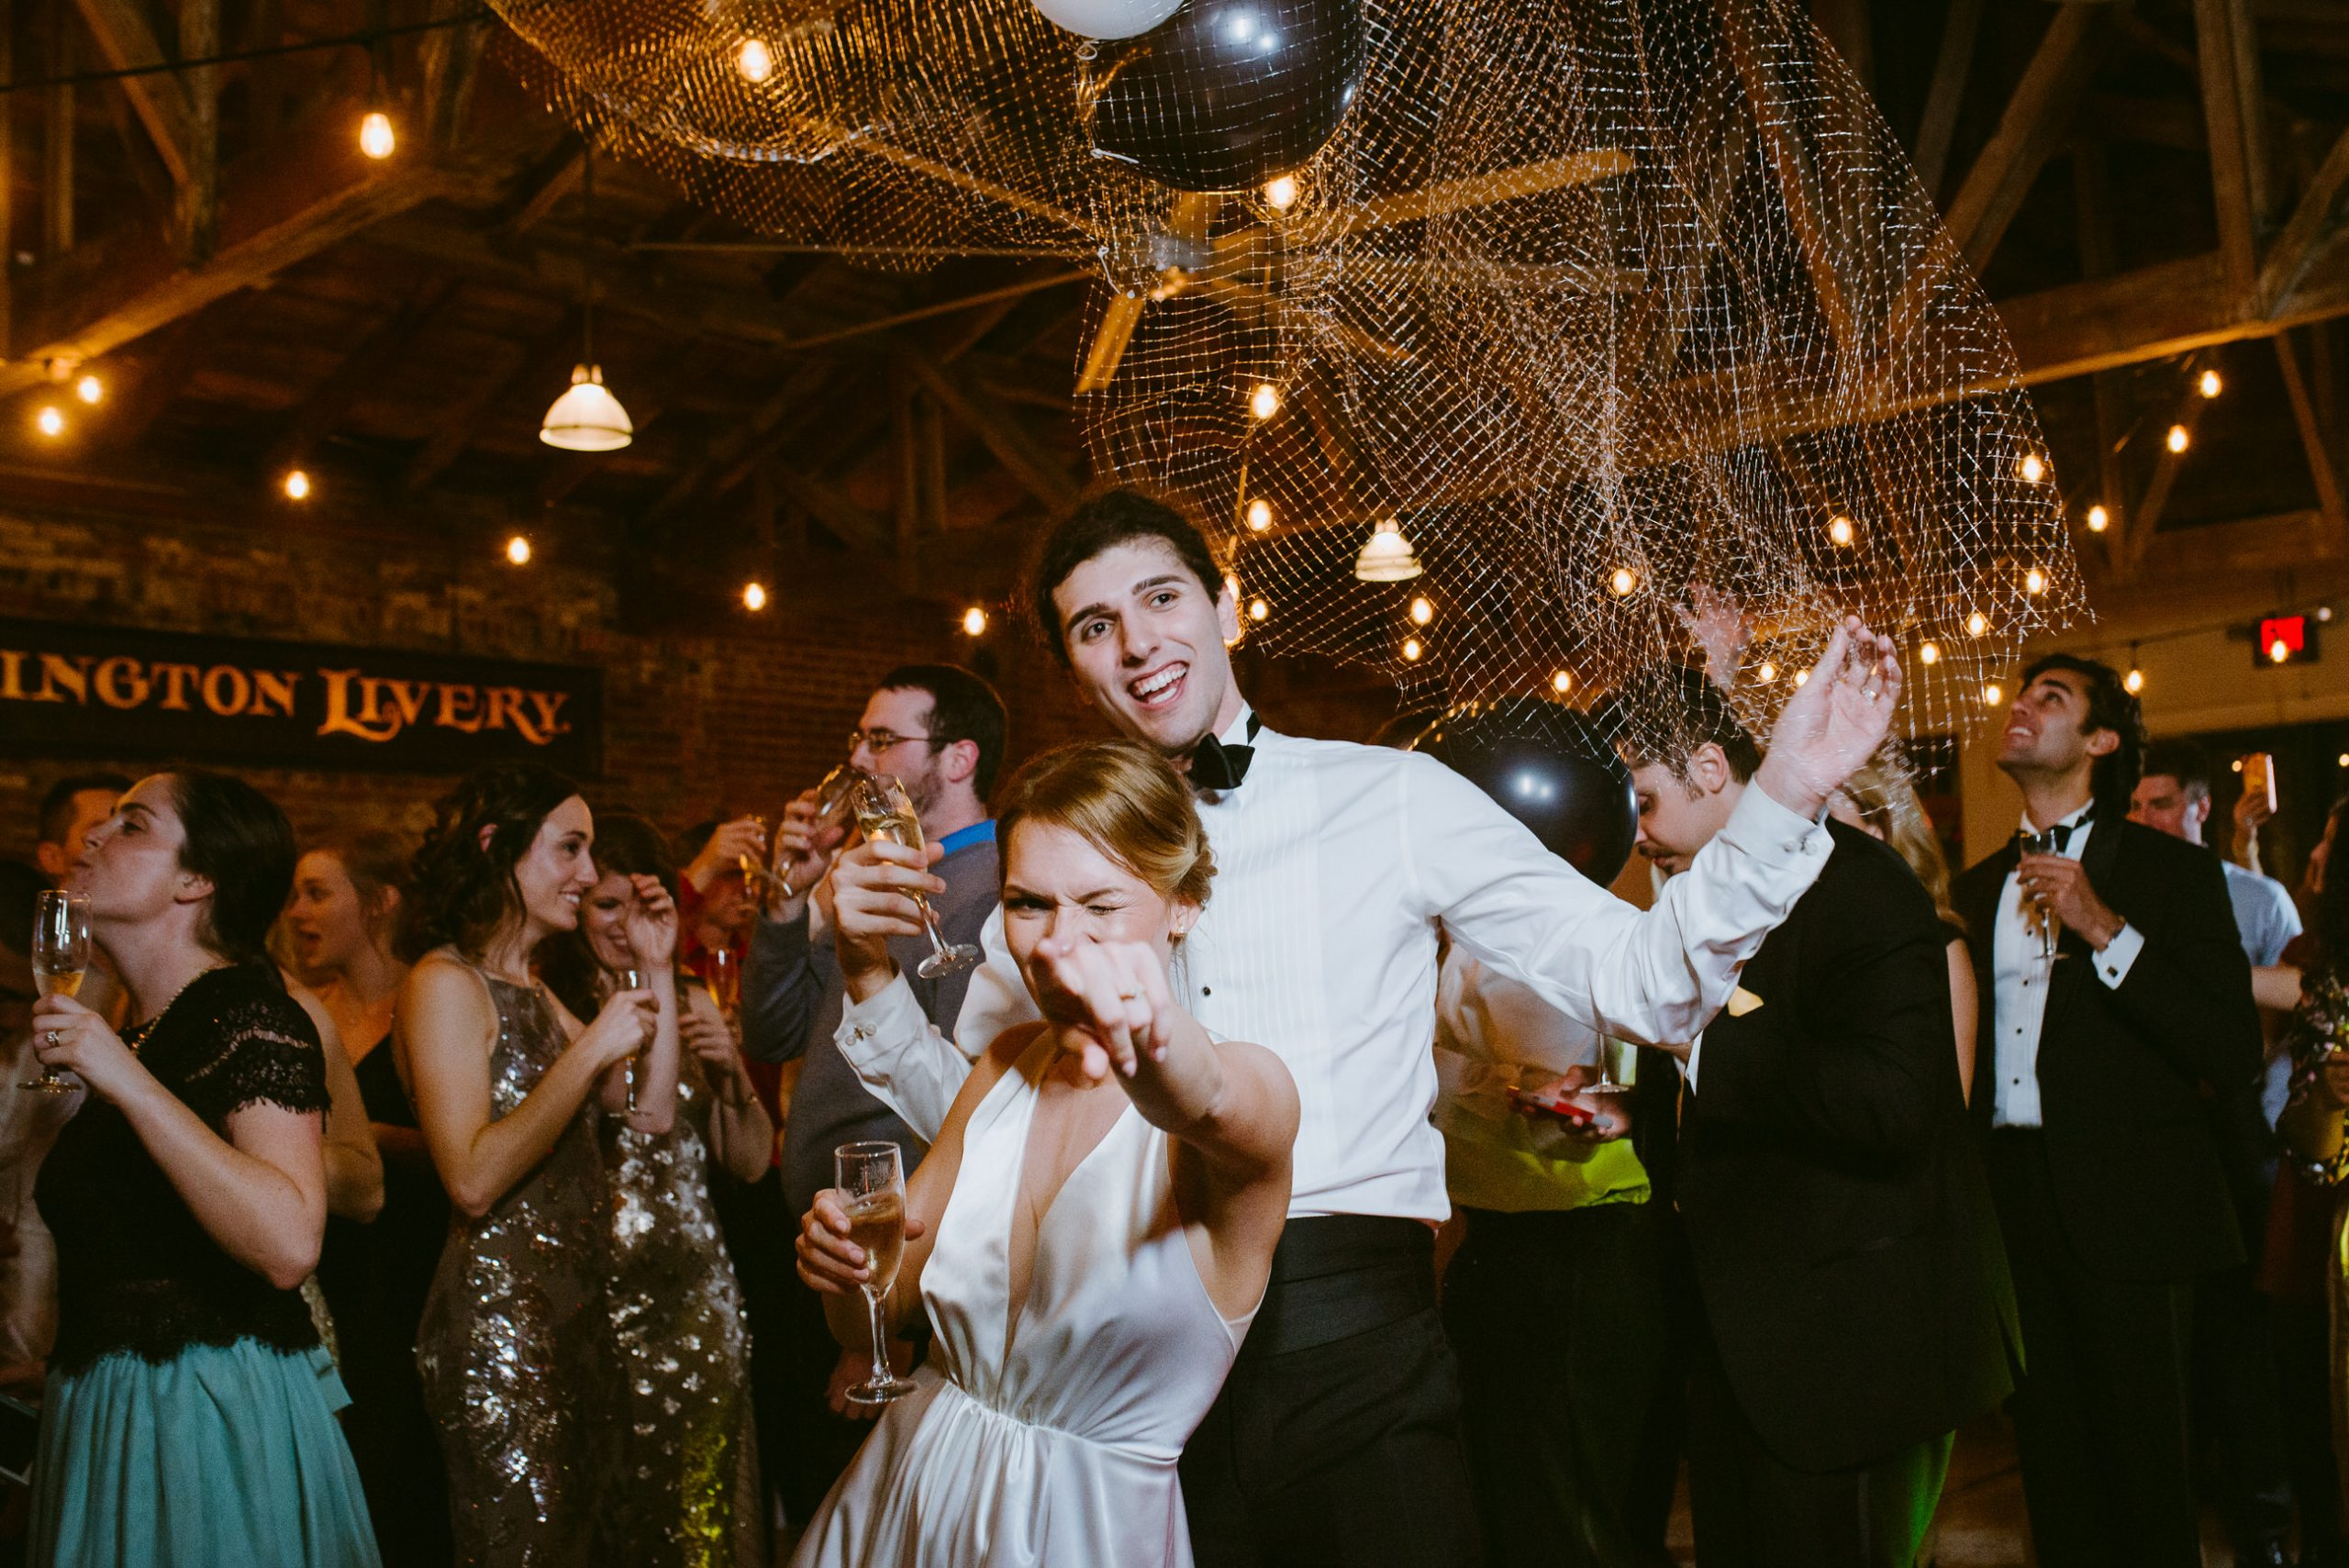 bride points at camera while groom in tux brandishes champagne just after New Years balloon drop at Lexington Livery Venue while guests celebrate behind